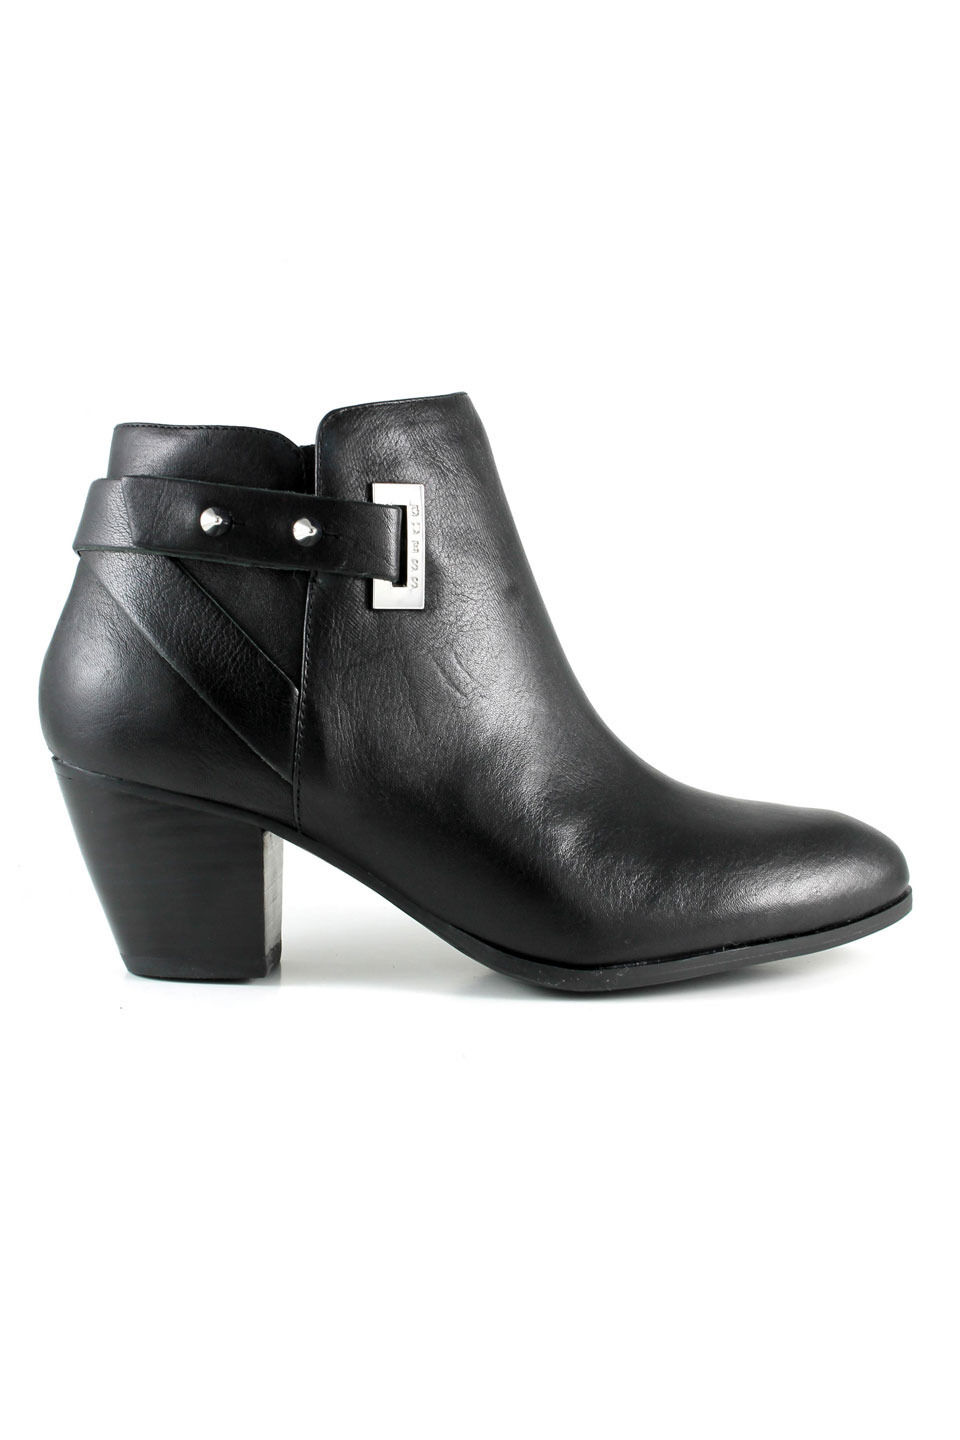 GUESS Black Leather Verity Bootie, US 9.5